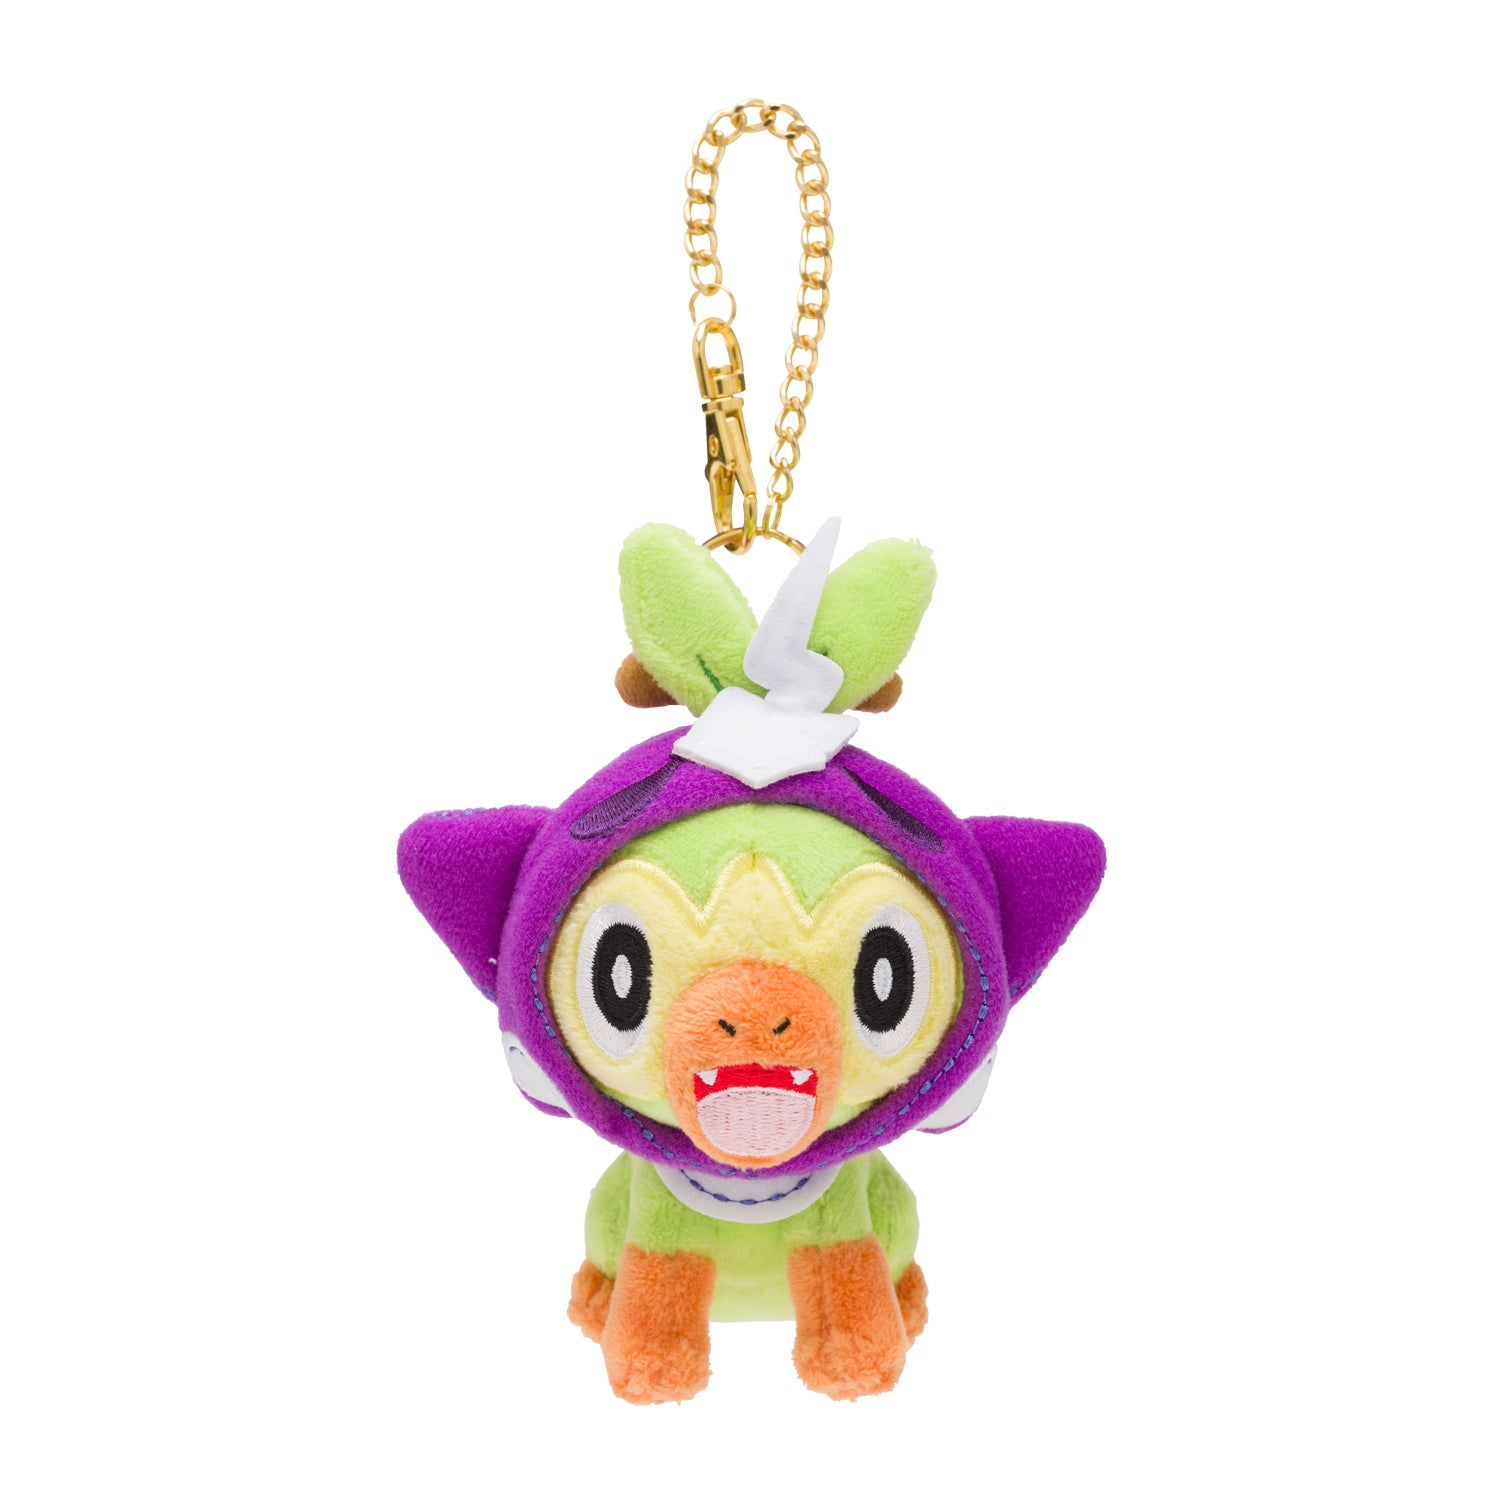 Halloween Pokemon Plushes Japan 2020 Grookey Sarunori Plush Keychain Halloween Galar Garden Pokemon